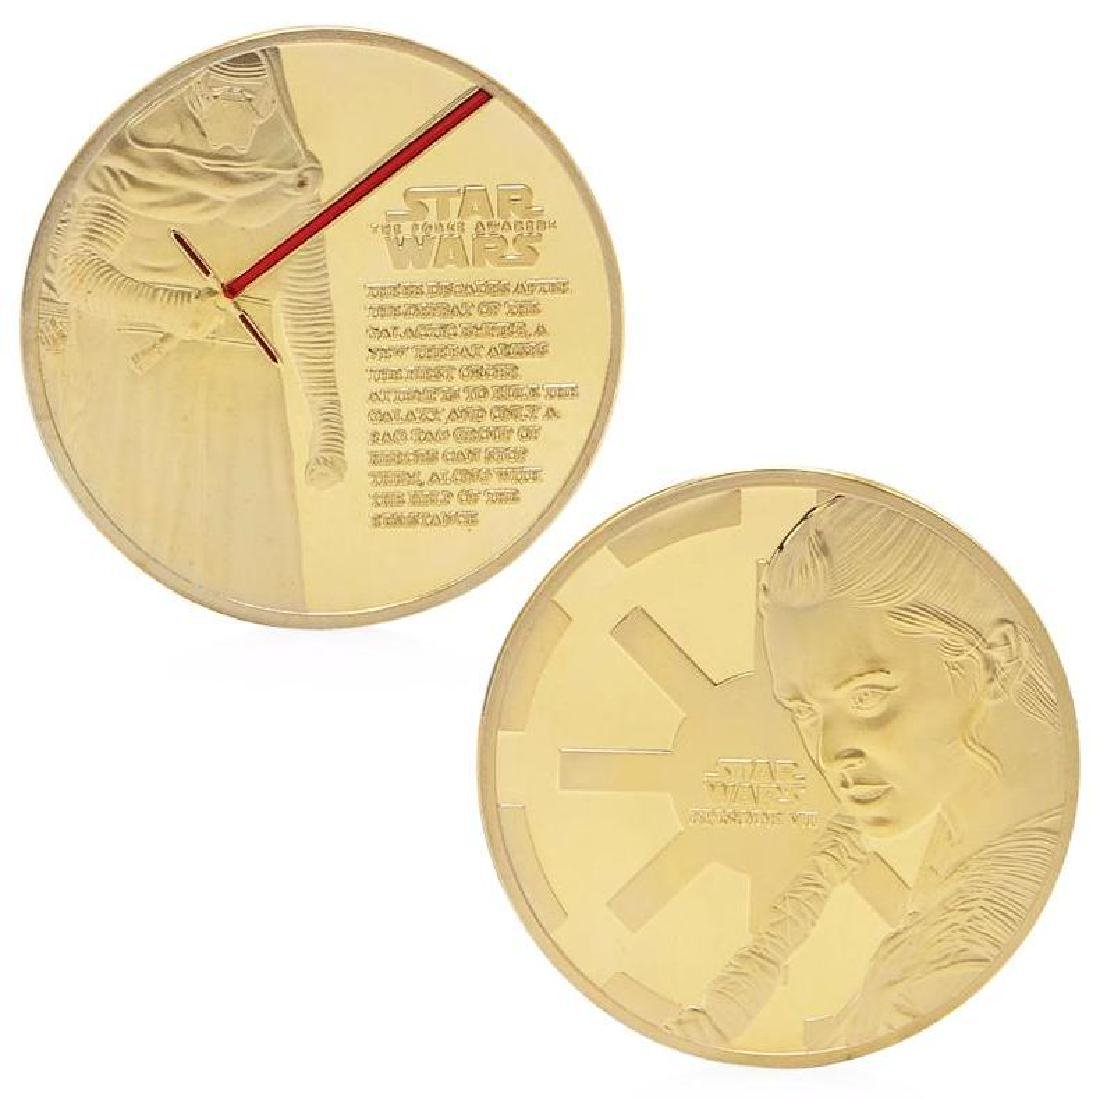 Star Wars Gold Clad Commemorative Coin